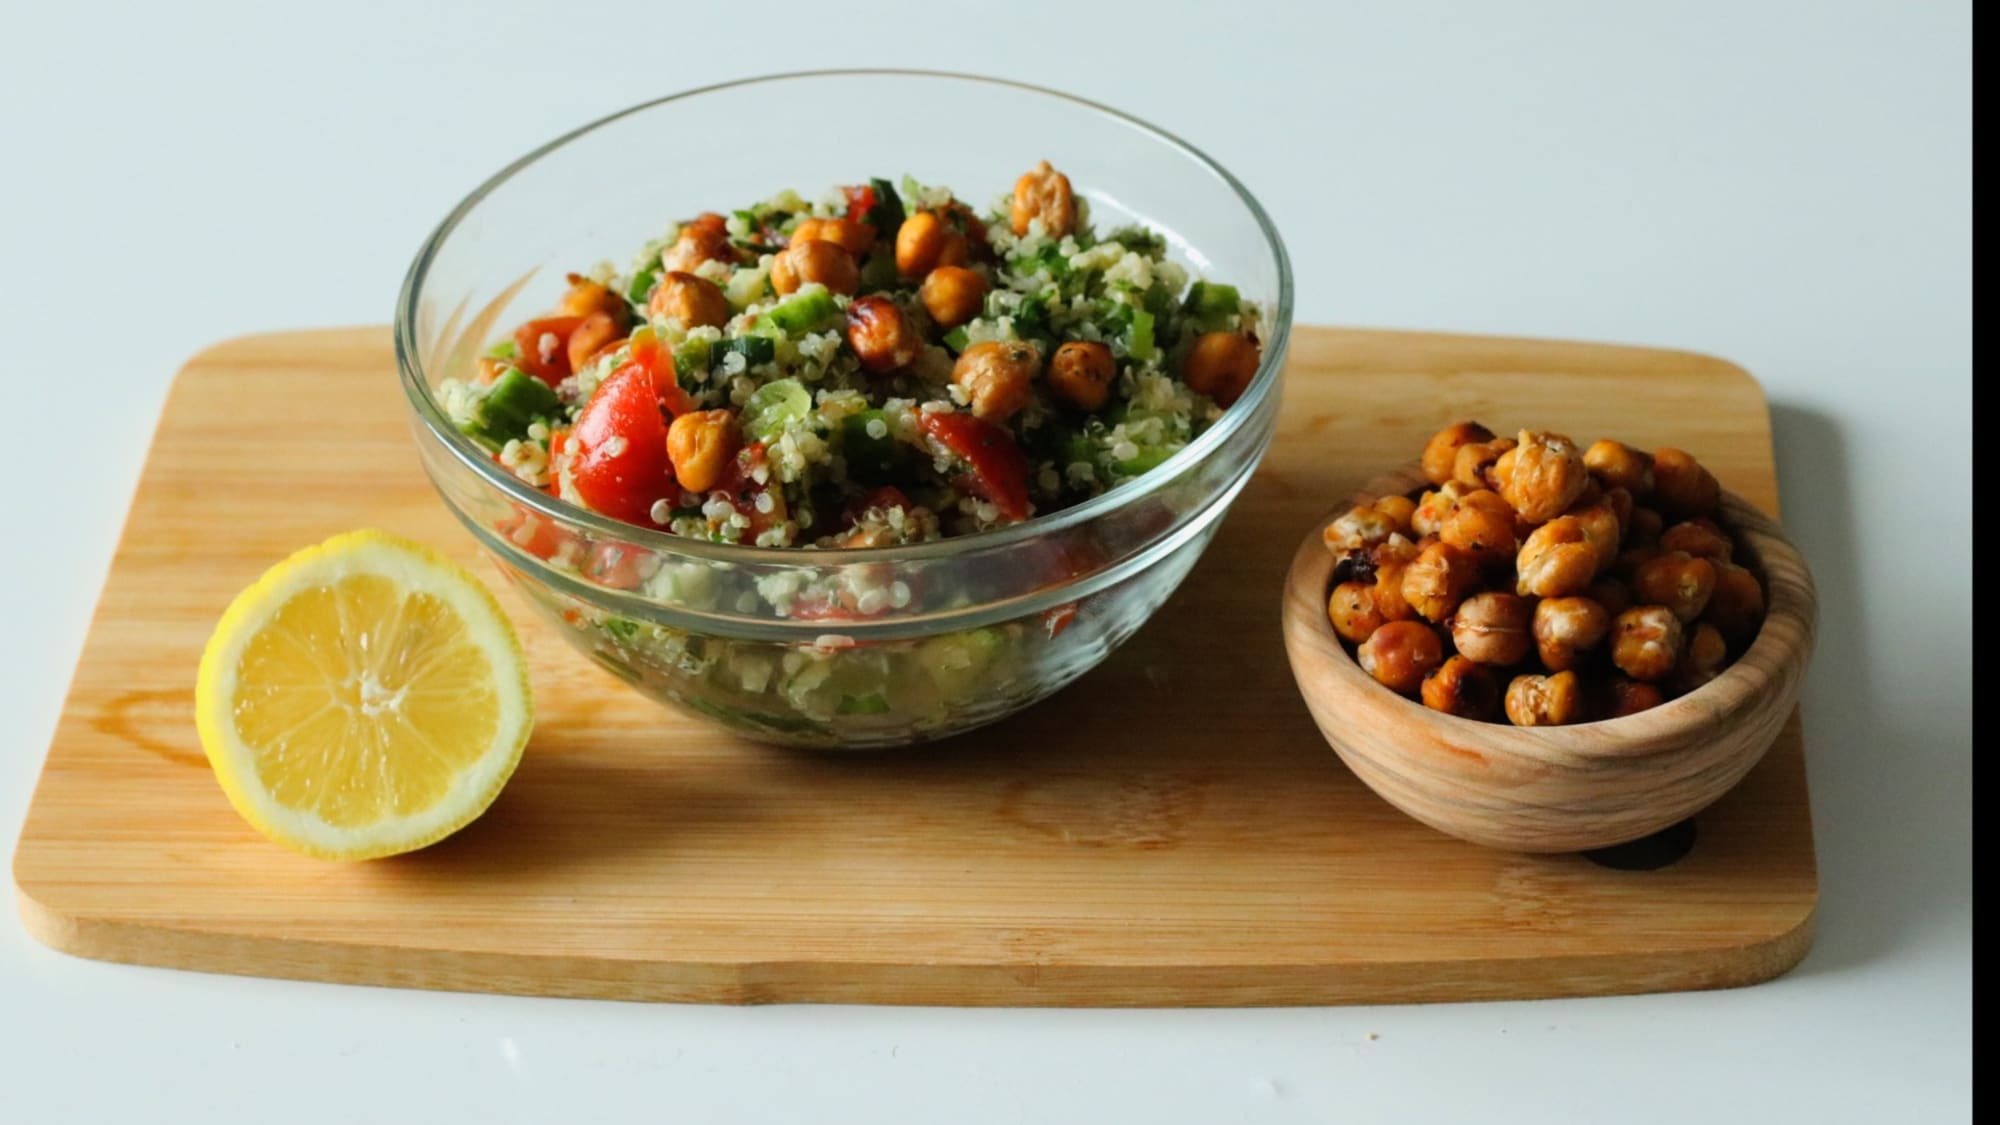 Katie Lee's Crispy Chickpea and Quinoa Tabbouleh Salad, the most versatile salad recipe